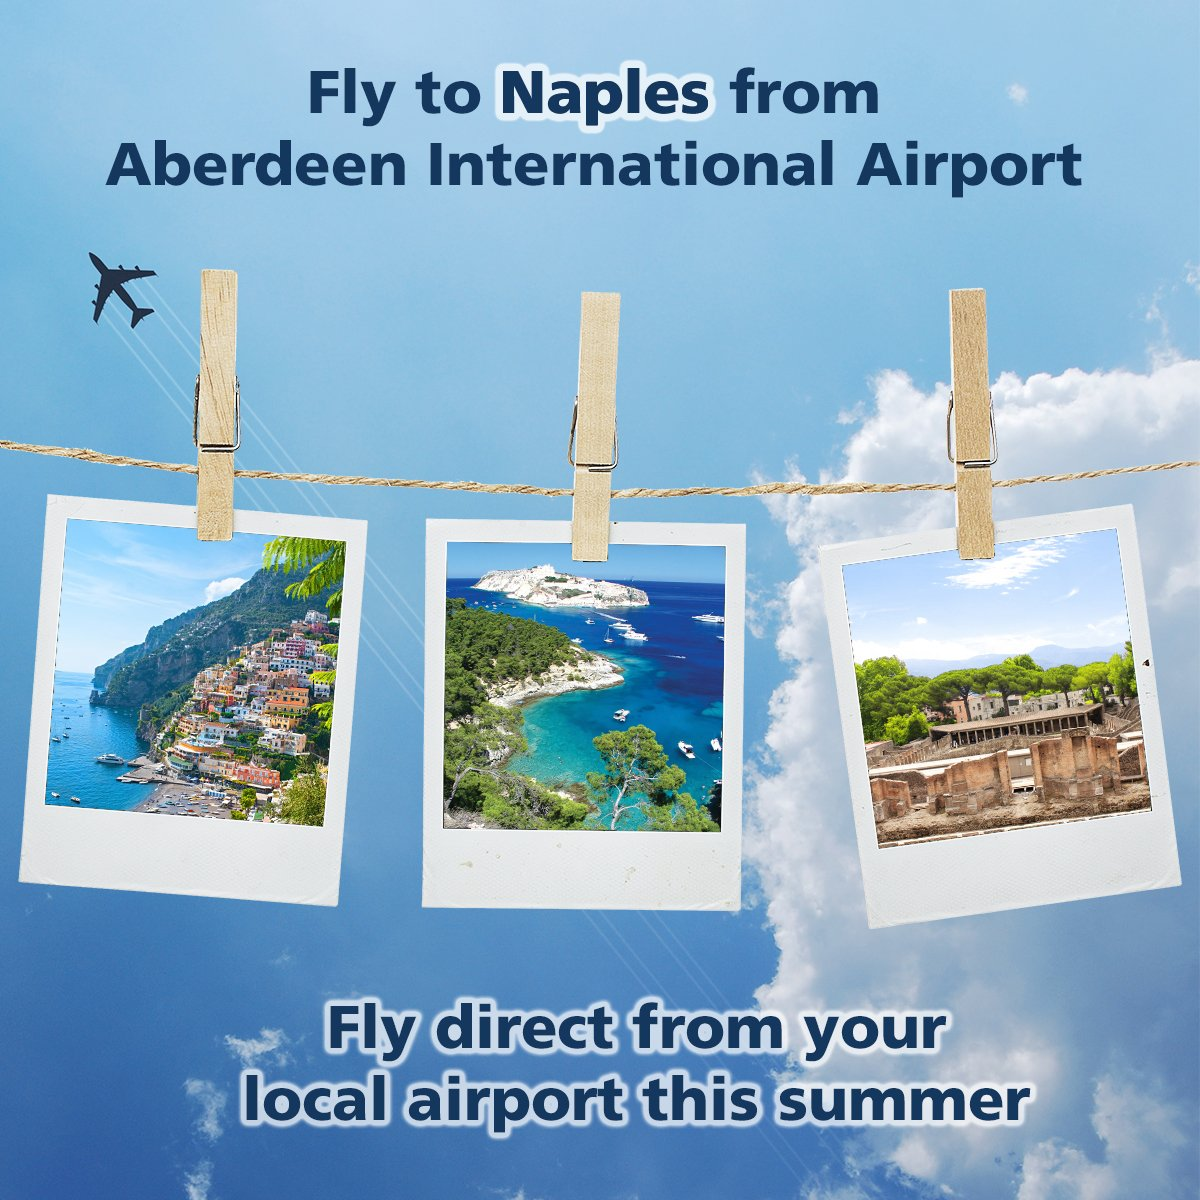 Fly direct to Naples from your local airport this summer!